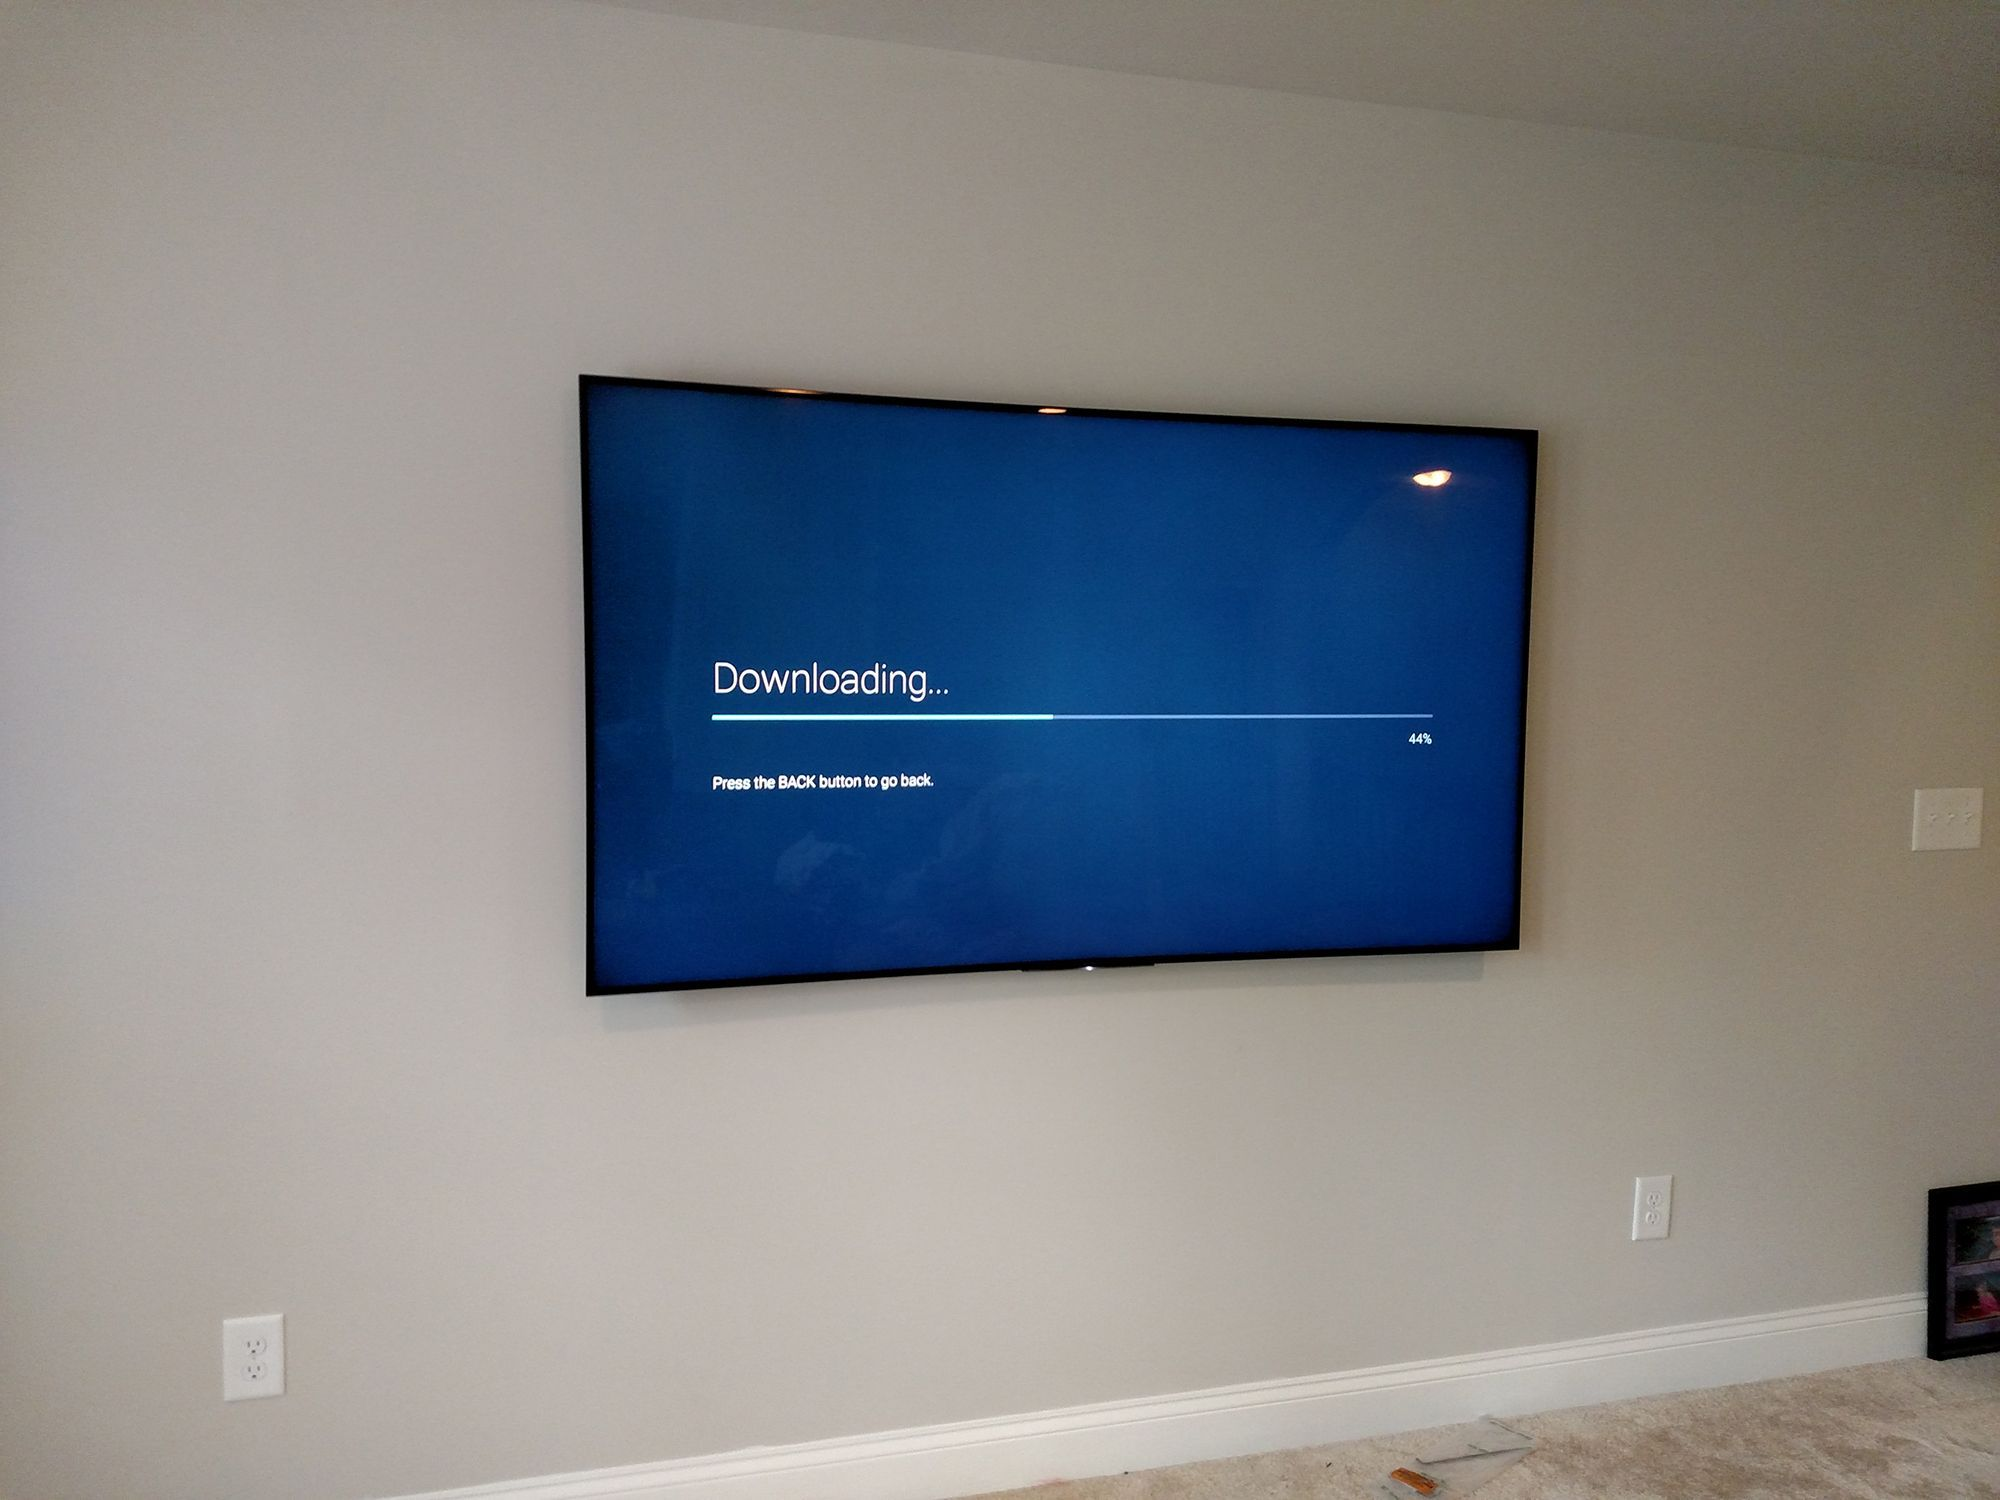 Sony 75in TV install by Grand Central Wiring & Home Audio Video. With this  TV install we used an ultra low profile TV mount to keep the TV as snug to  the ...